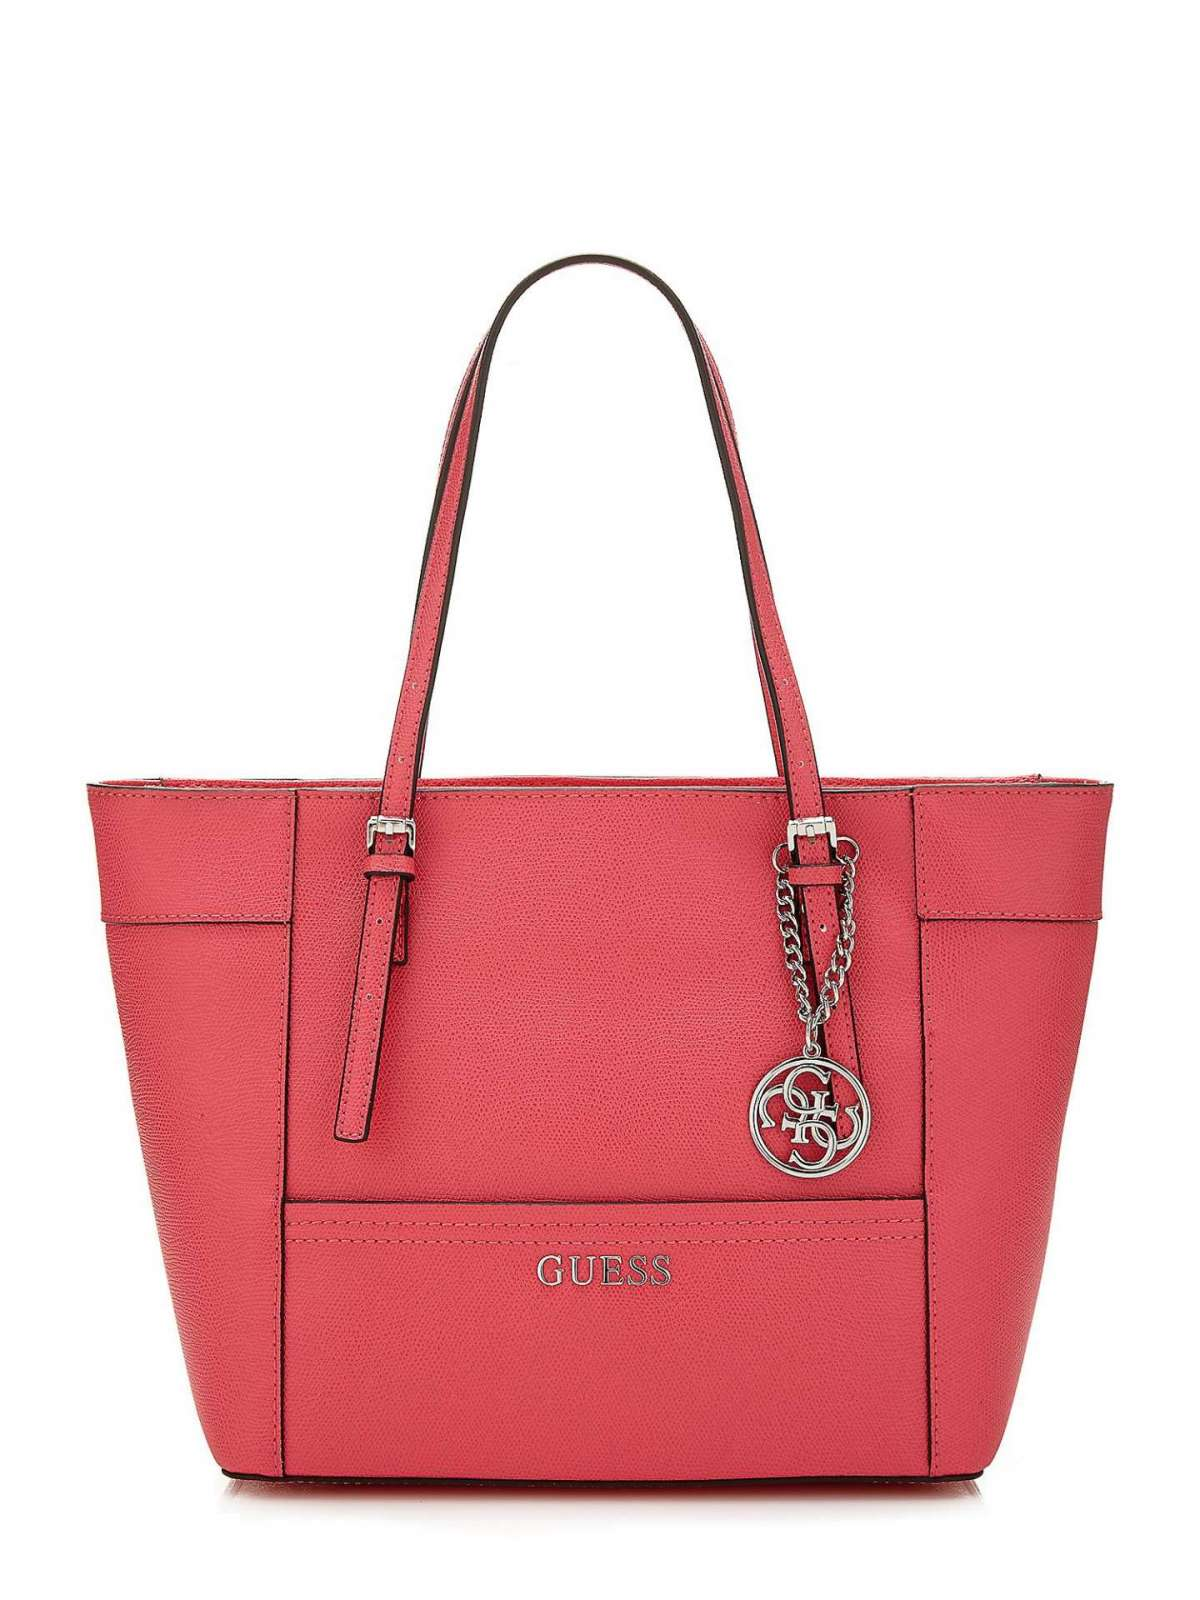 Shopping Bag Piccola Color Fragola Guess Autunno Inverno 2017